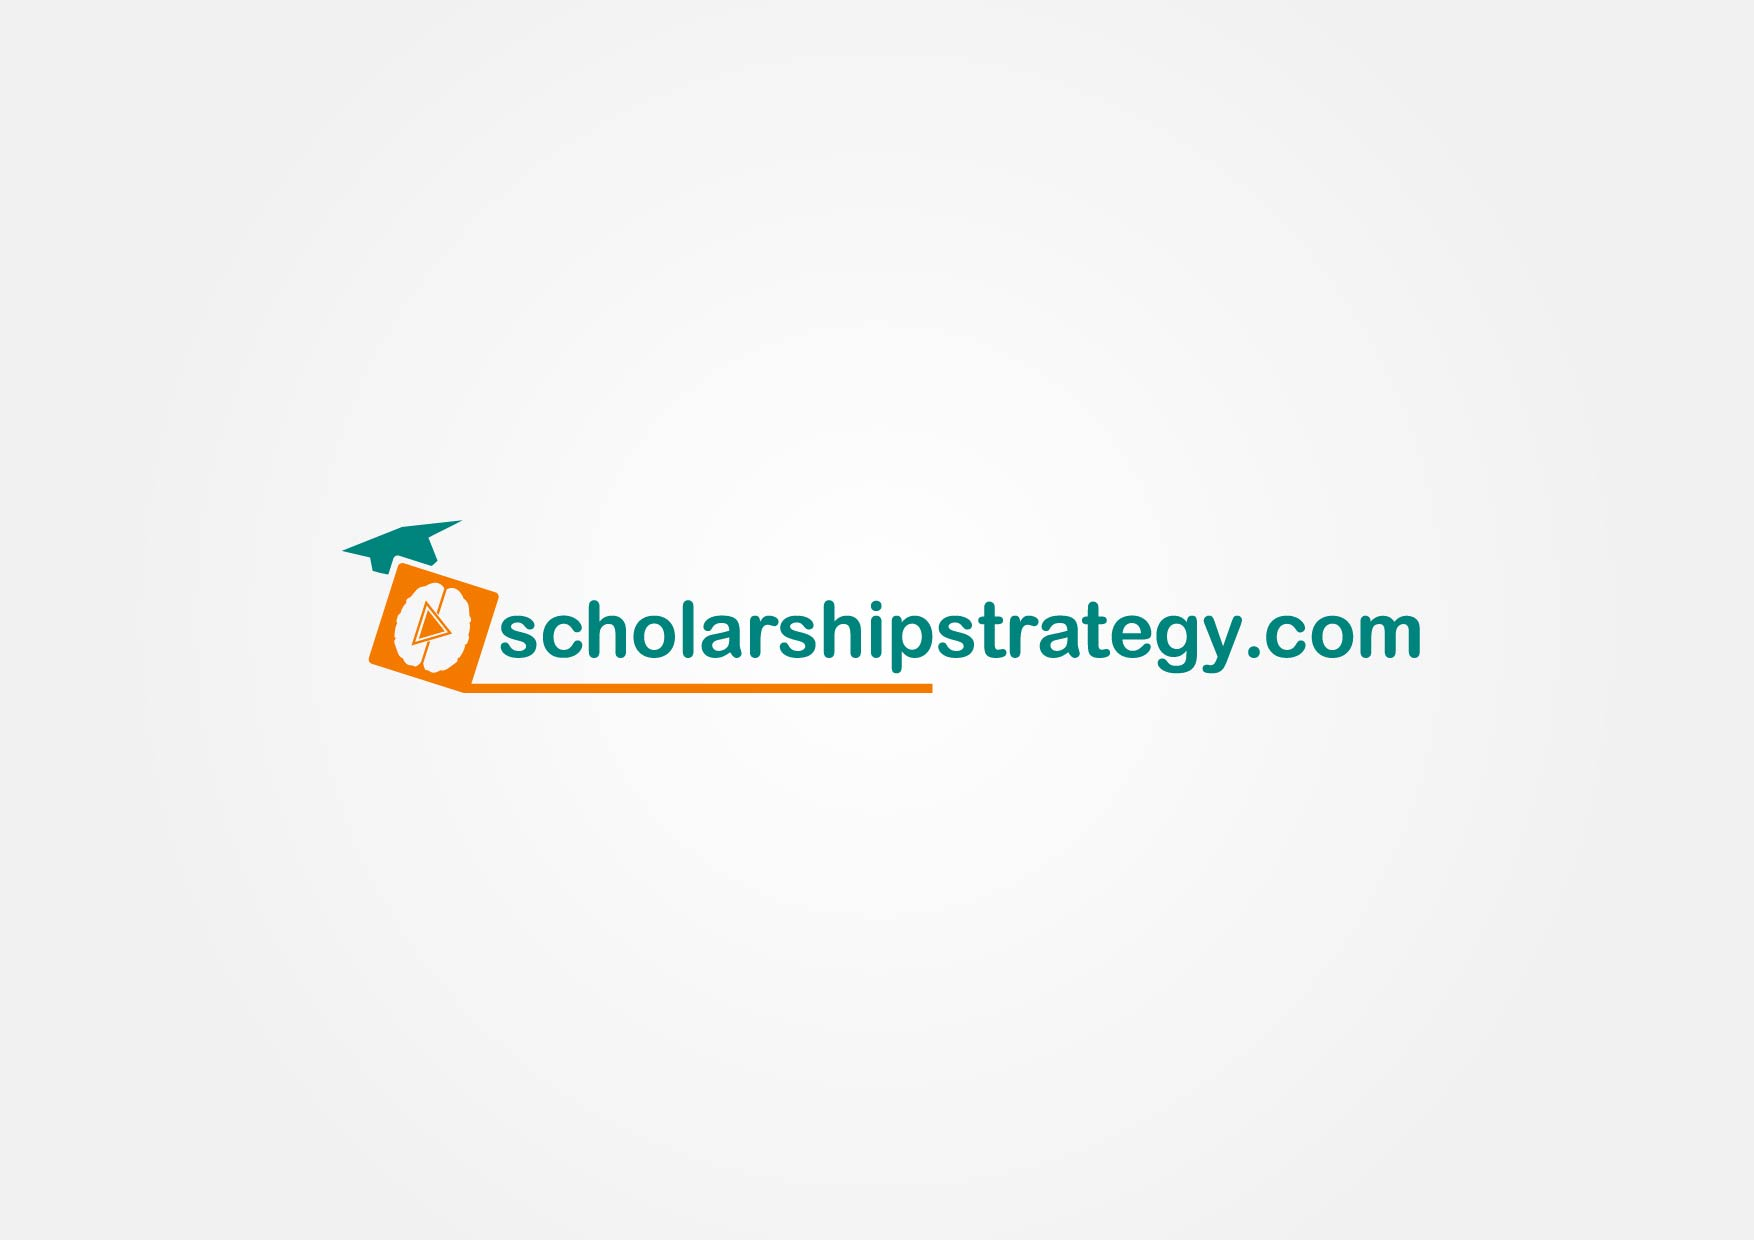 Logo Design by Osi Indra - Entry No. 54 in the Logo Design Contest Captivating Logo Design for Scholarshipstrategy.com.